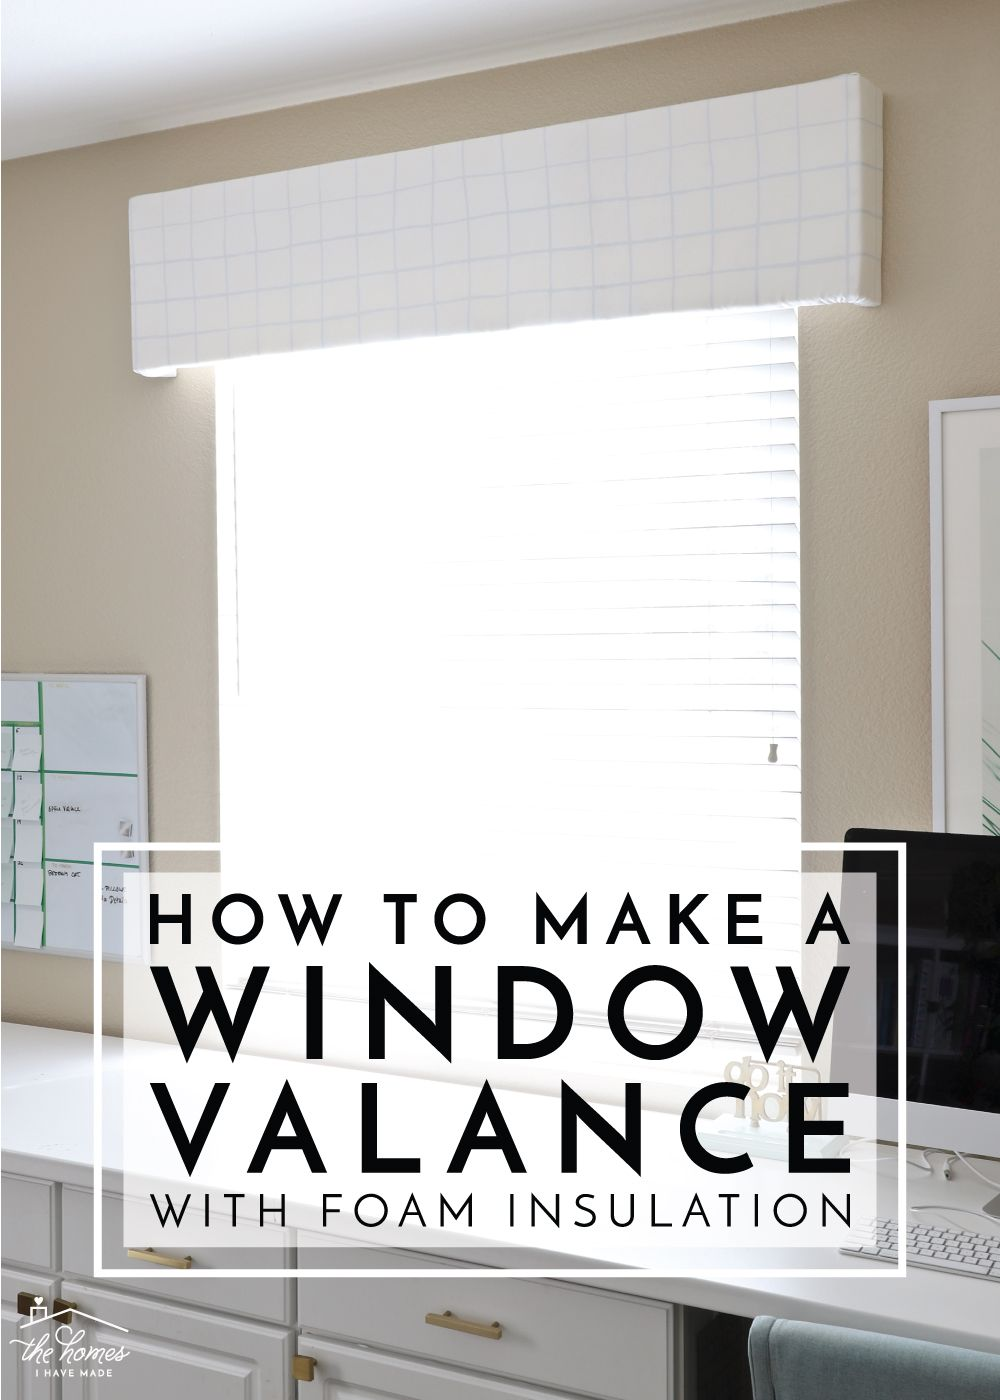 How To Make A Window Valance With Foam Insulation The Homes I Have Made Valance Window Treatments Window Valance Diy Diy Window Treatments